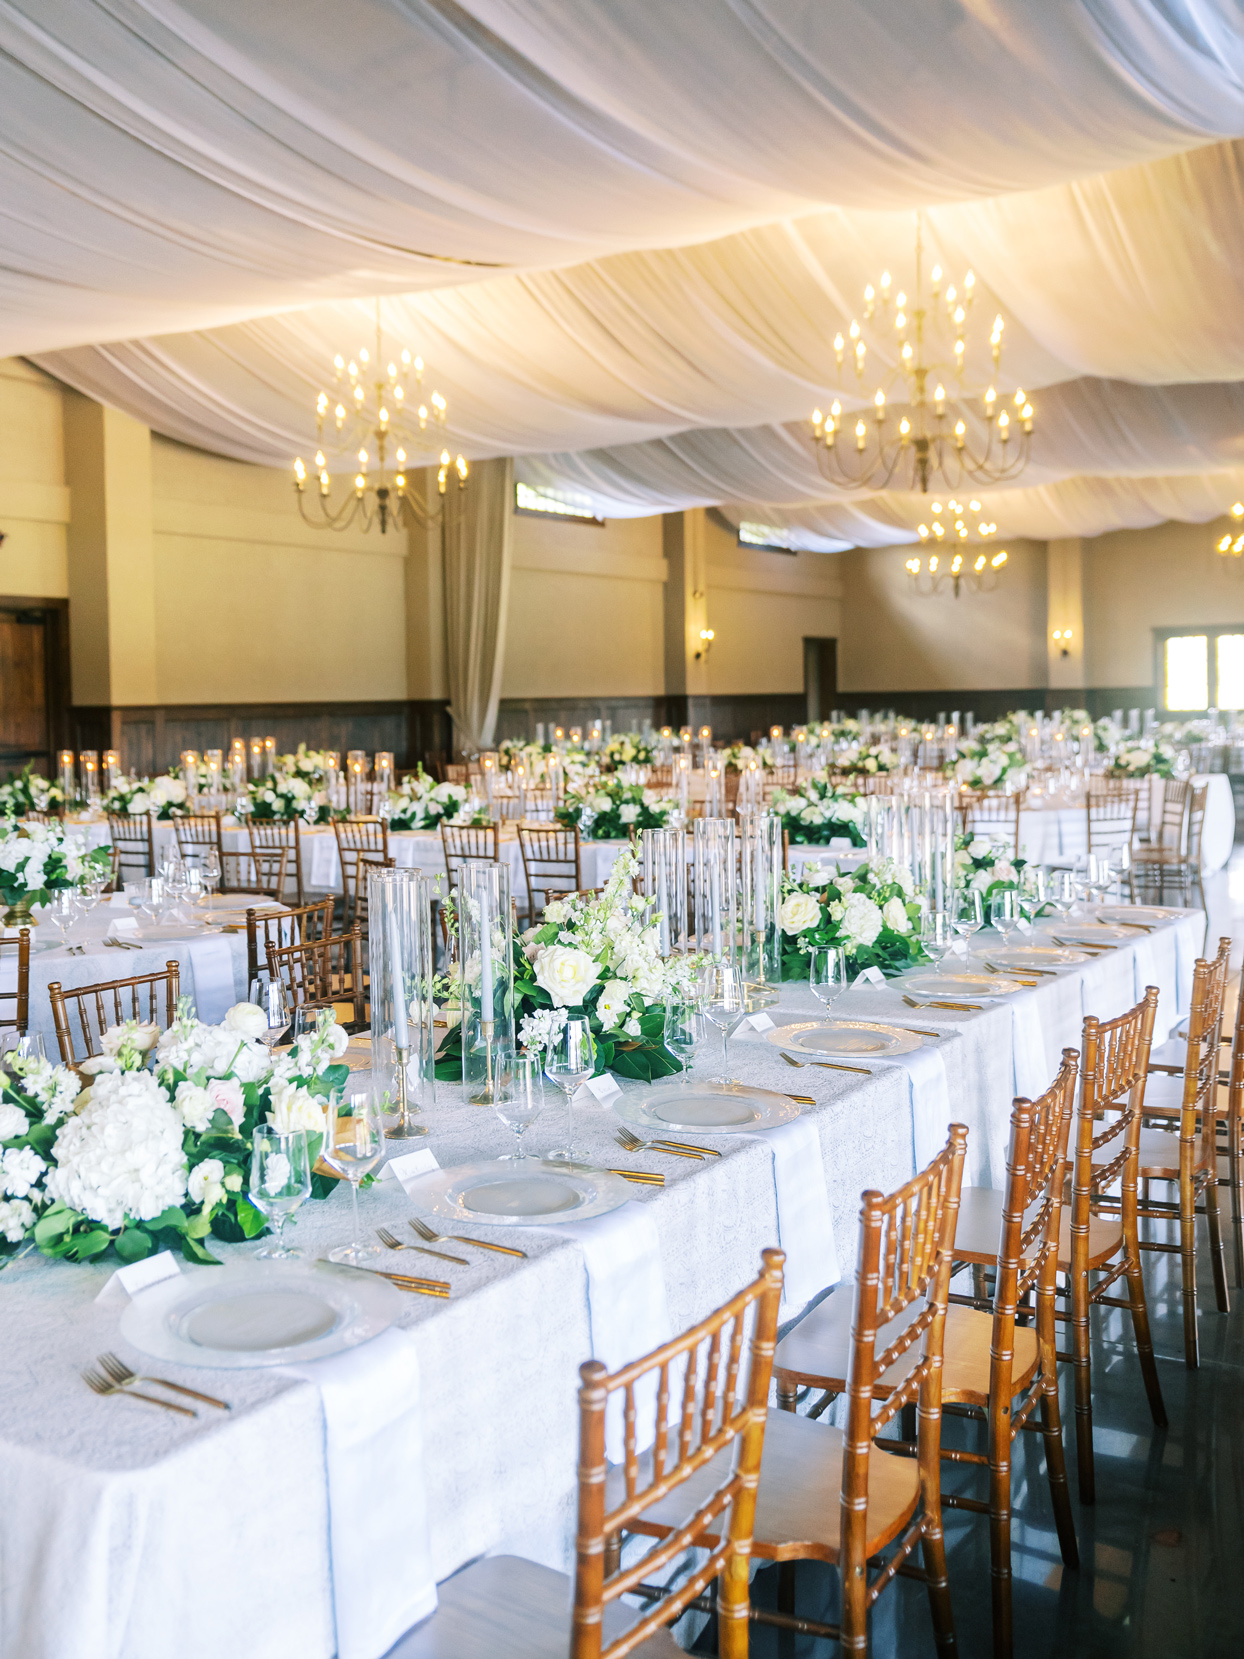 white floral and greenery table centerpieces on long reception tables